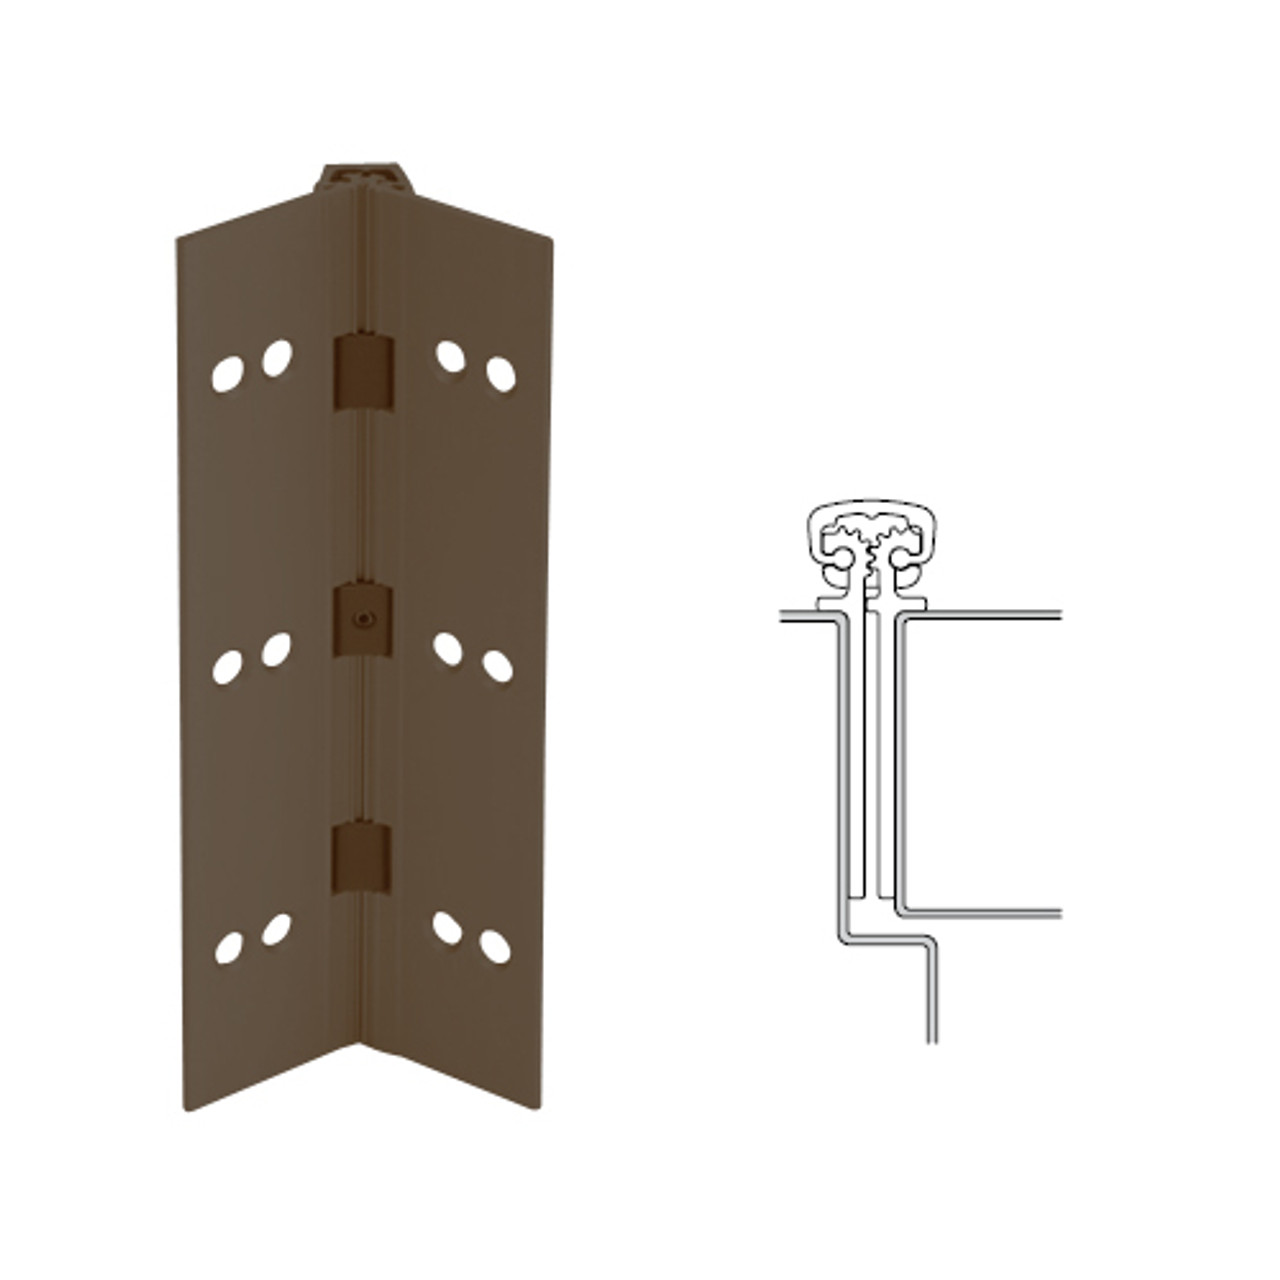 027XY-313AN-85-TFWD IVES Full Mortise Continuous Geared Hinges with Thread Forming Screws in Dark Bronze Anodized